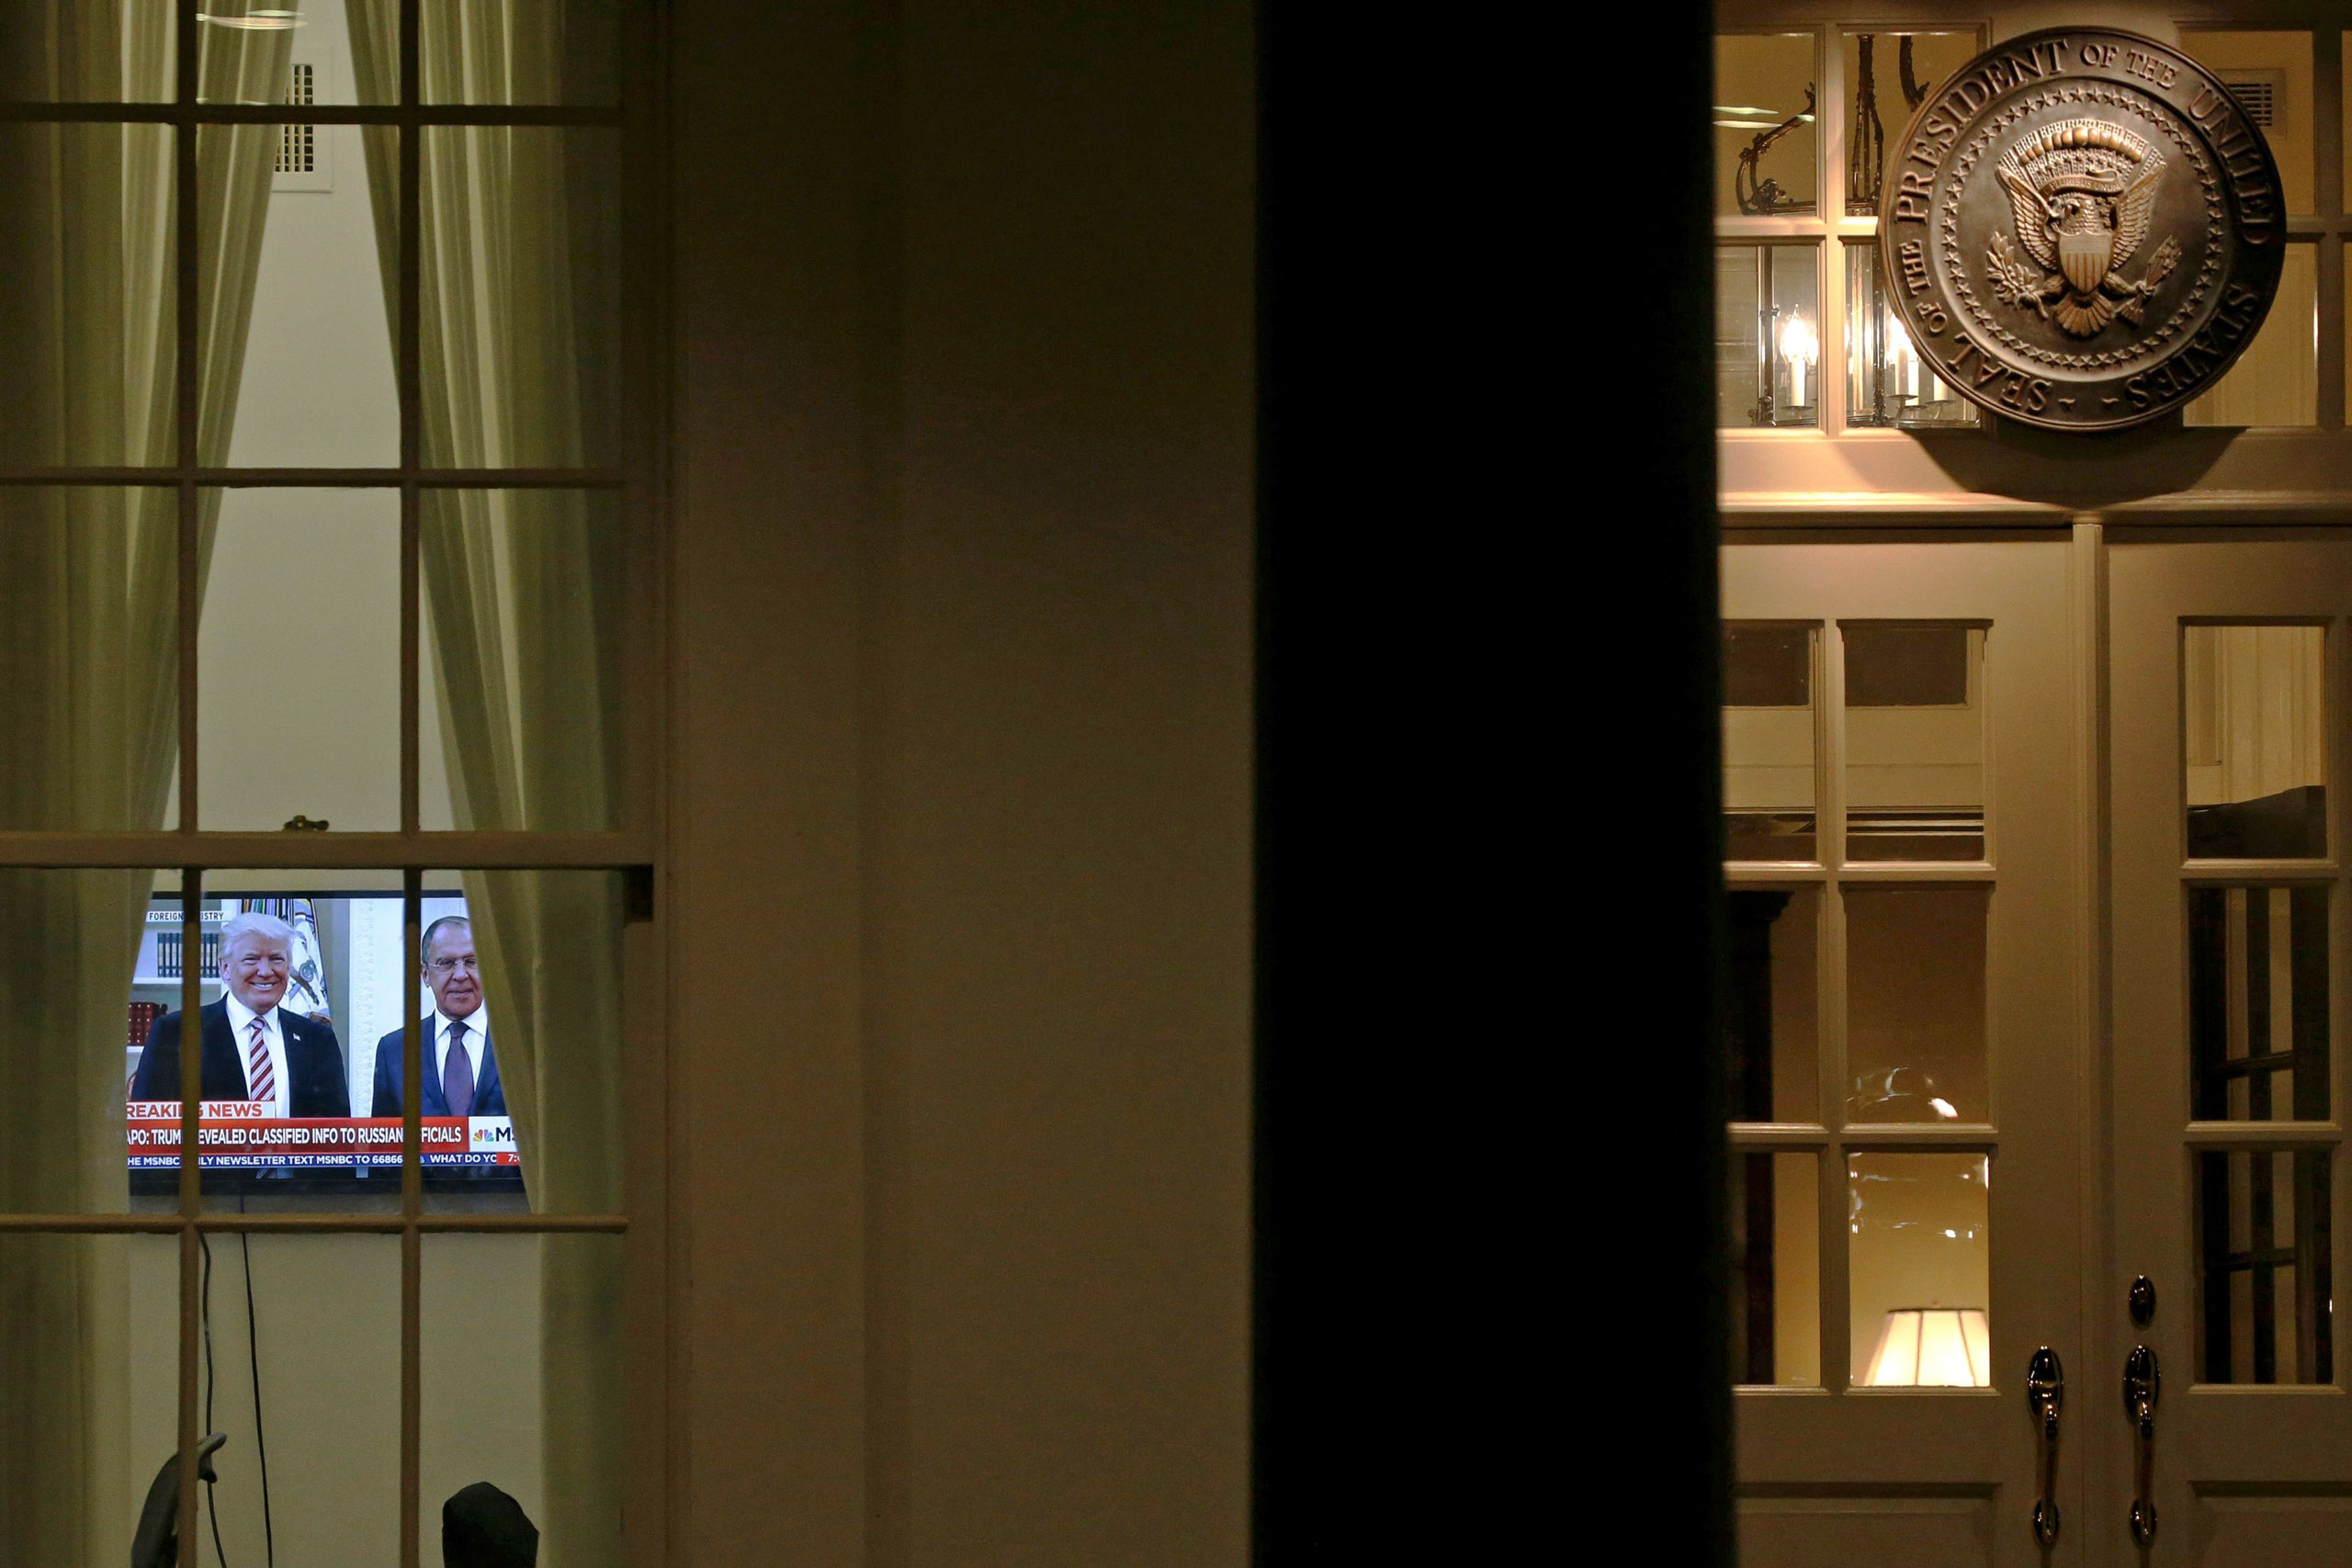 Televisions in the West Wing were tuned on May15 to reports that Trump had shared intelligence with the Russian ForeignMinister